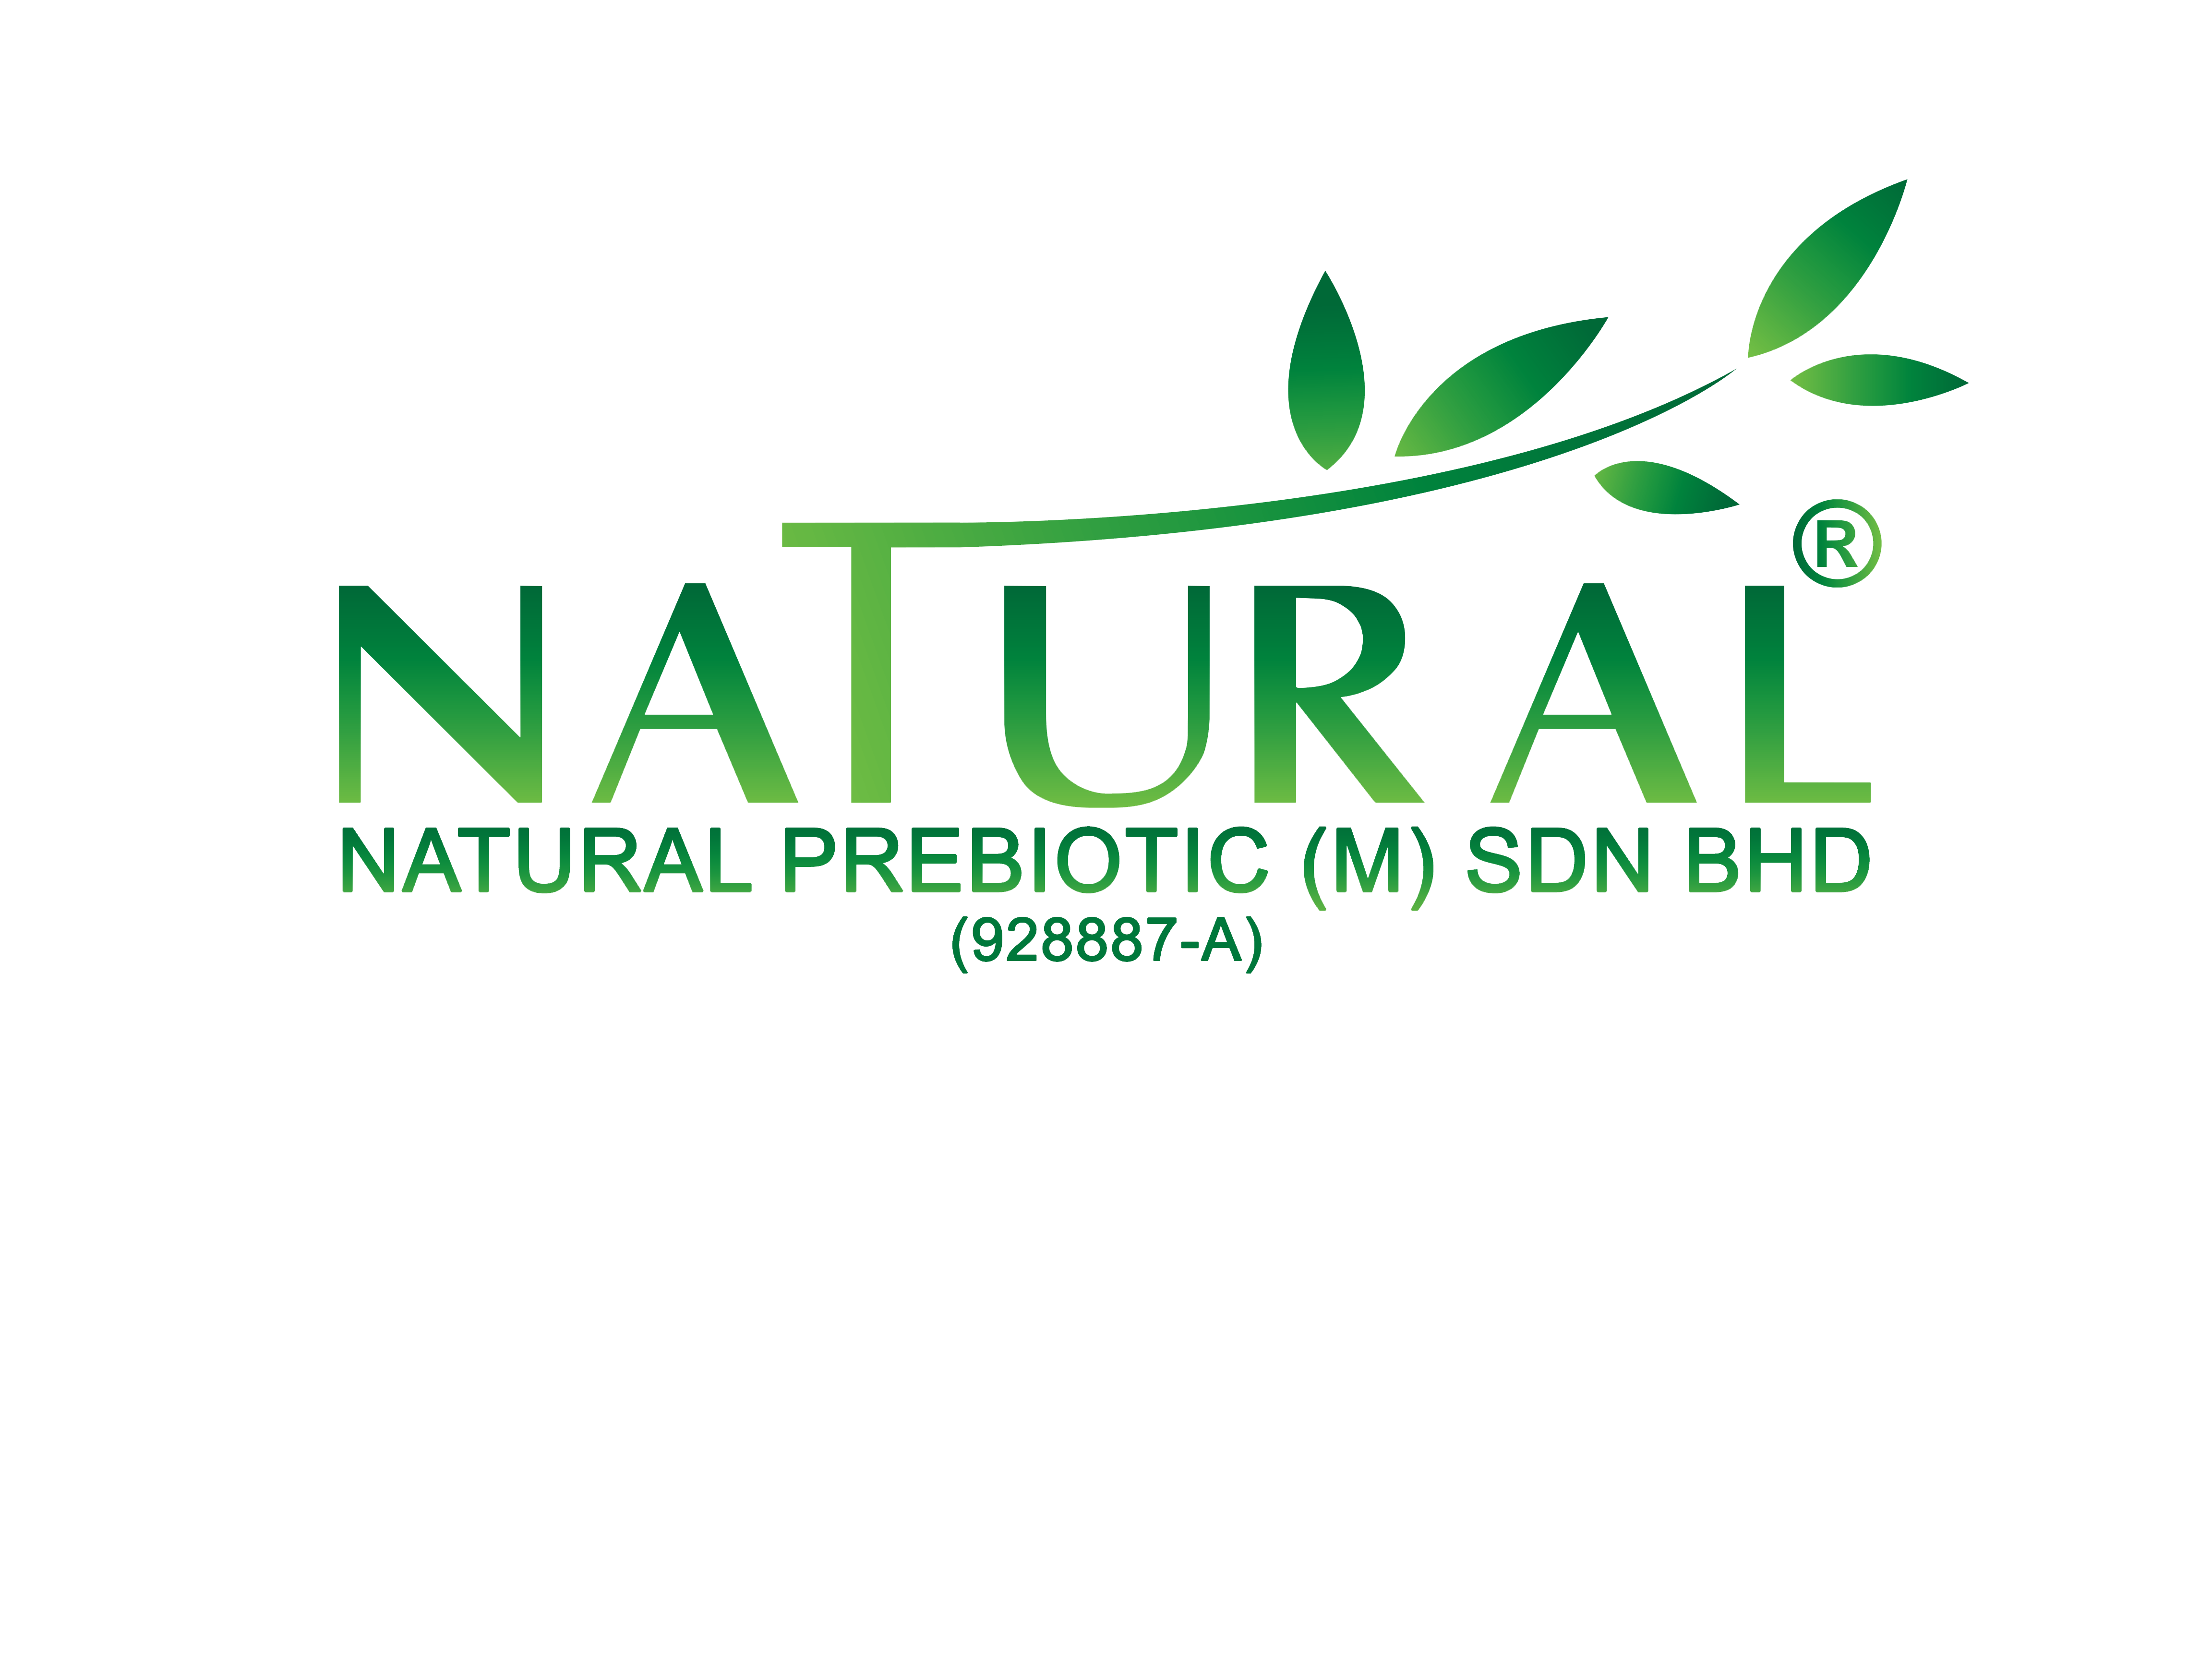 naturalprebiotic